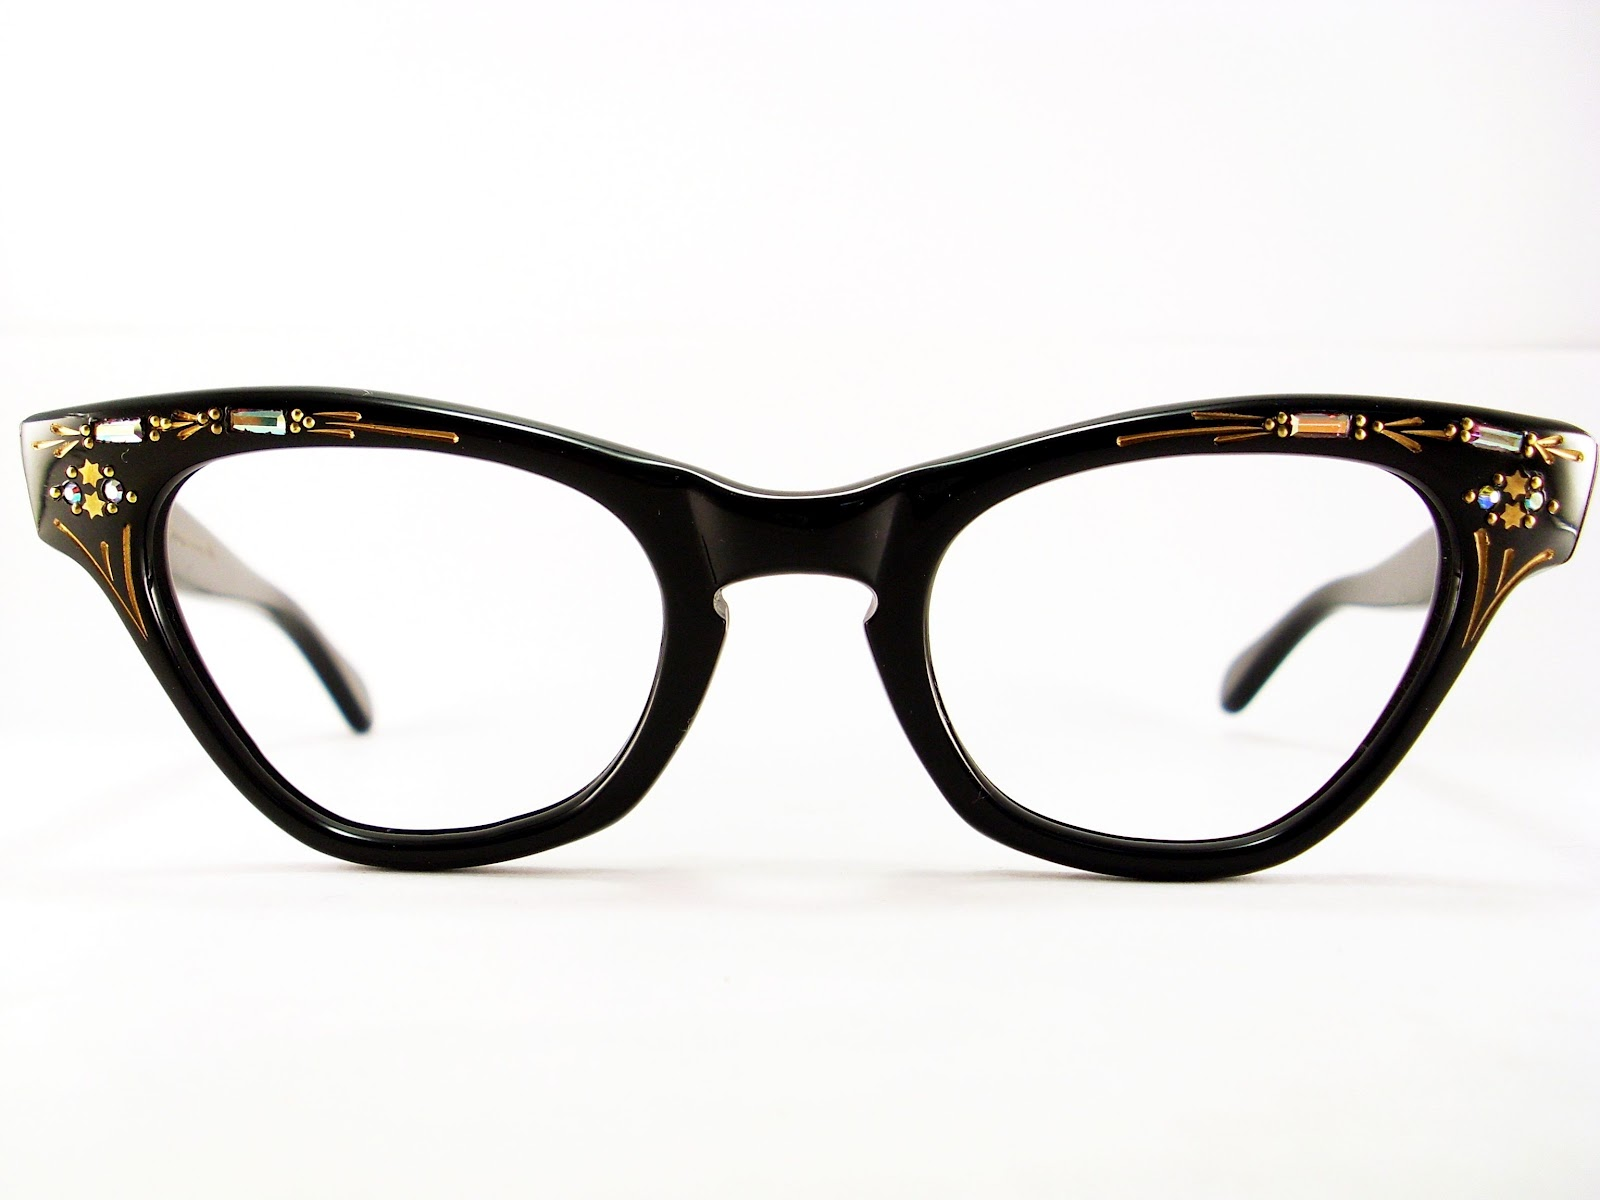 Old Glasses Frames New Lenses : Vintage Eyeglasses Frames Eyewear Sunglasses 50S: CAT EYE ...